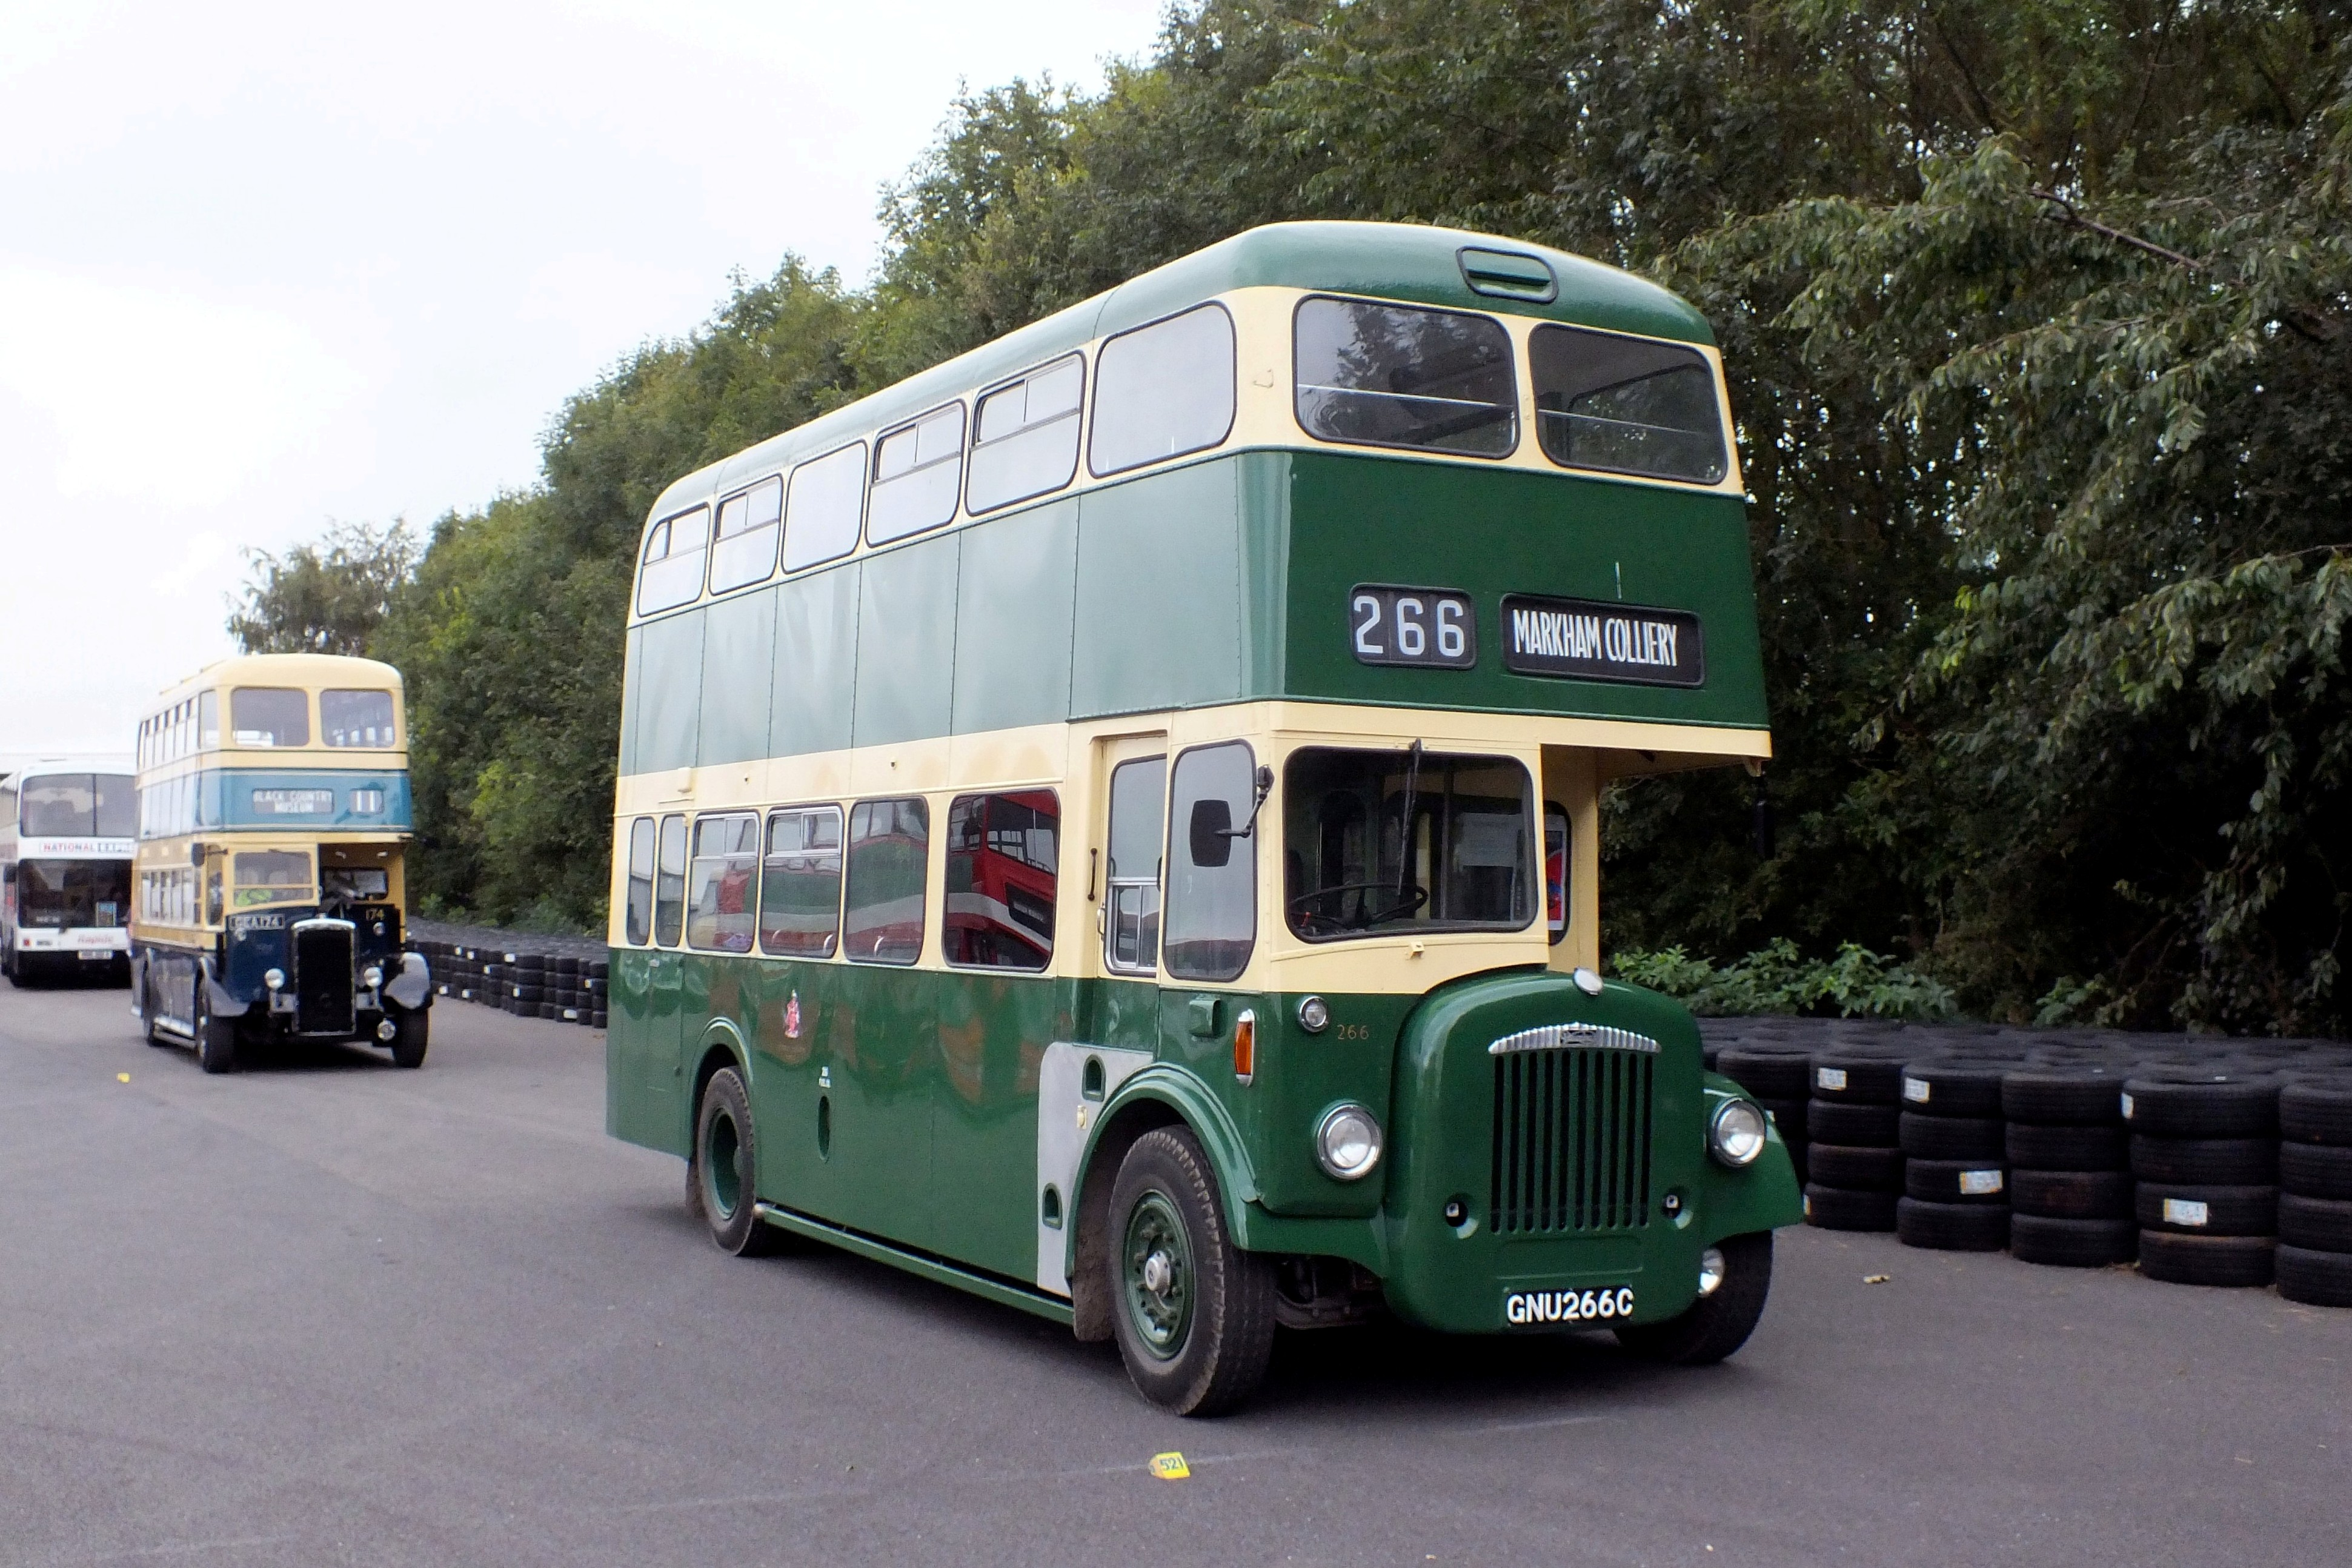 17 September 2017 Showbus, Donington. 358.jpg